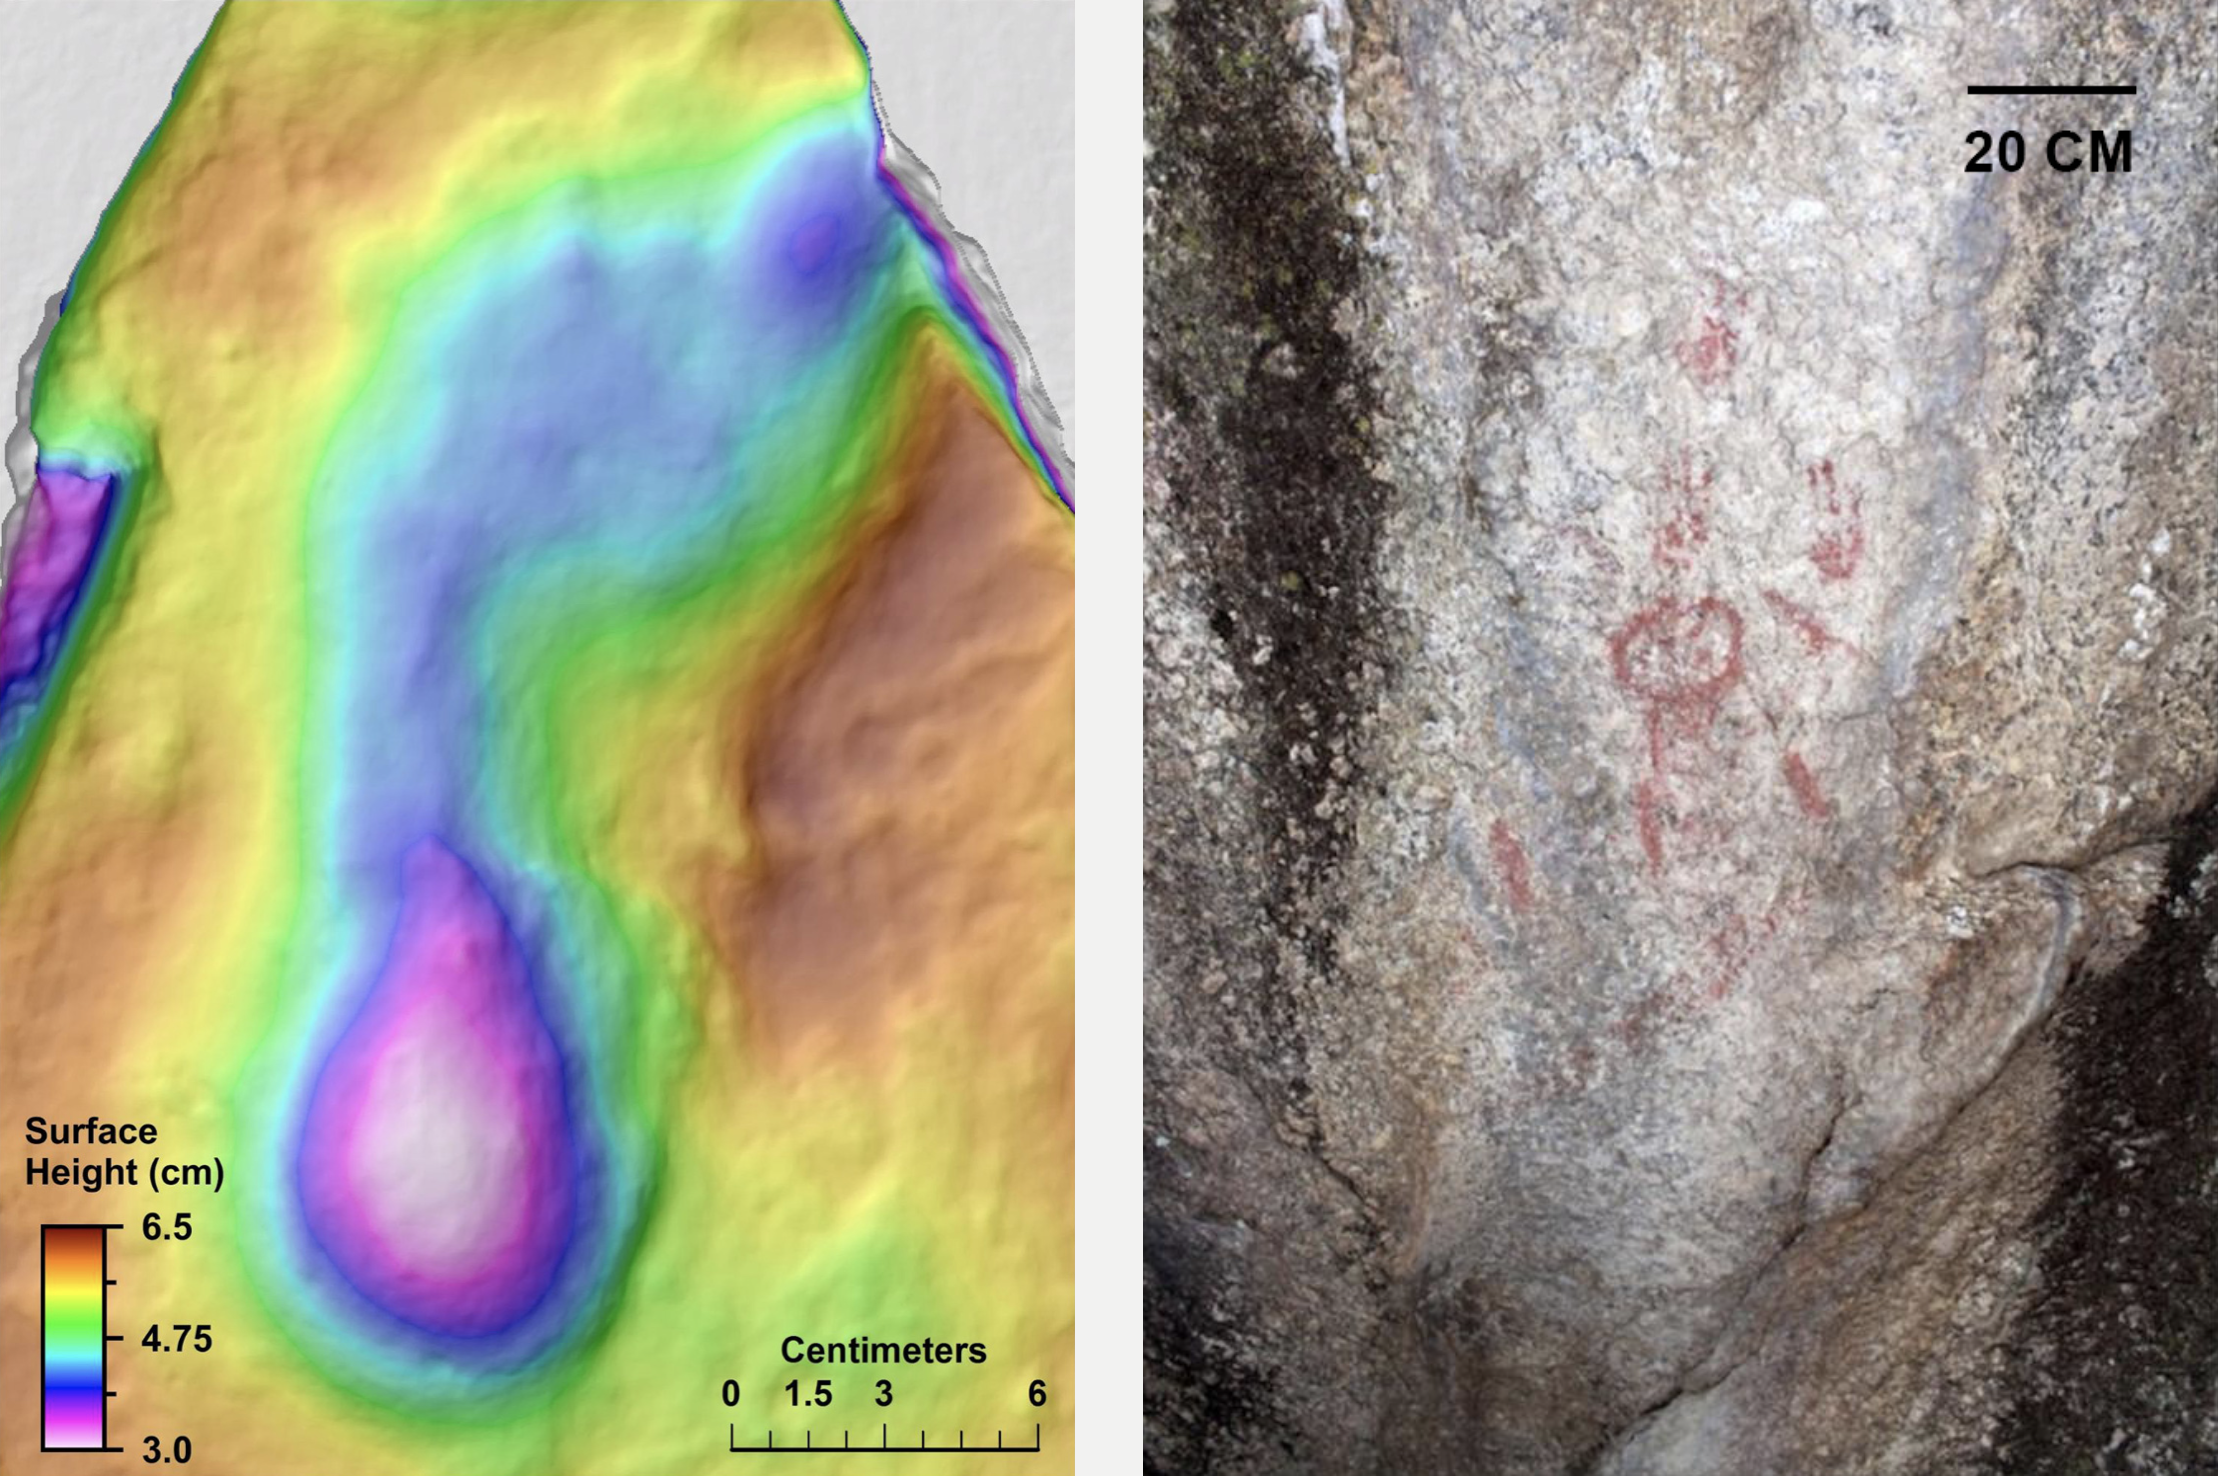 Left: A 'Kula footprint' discovered by construction workers in well-preserved in fine-grained volcanic ash in the 1960s. The footprints belonged to homo sapiens who stepped into a wet ash layer. As the volcanic eruption continued, their footprints were buried and preserved by a protective ash layer. Right: A red ochre painting in a rock-shelter located near the Çakallar volcano. Images:  Ulosoy et al. 2019 .